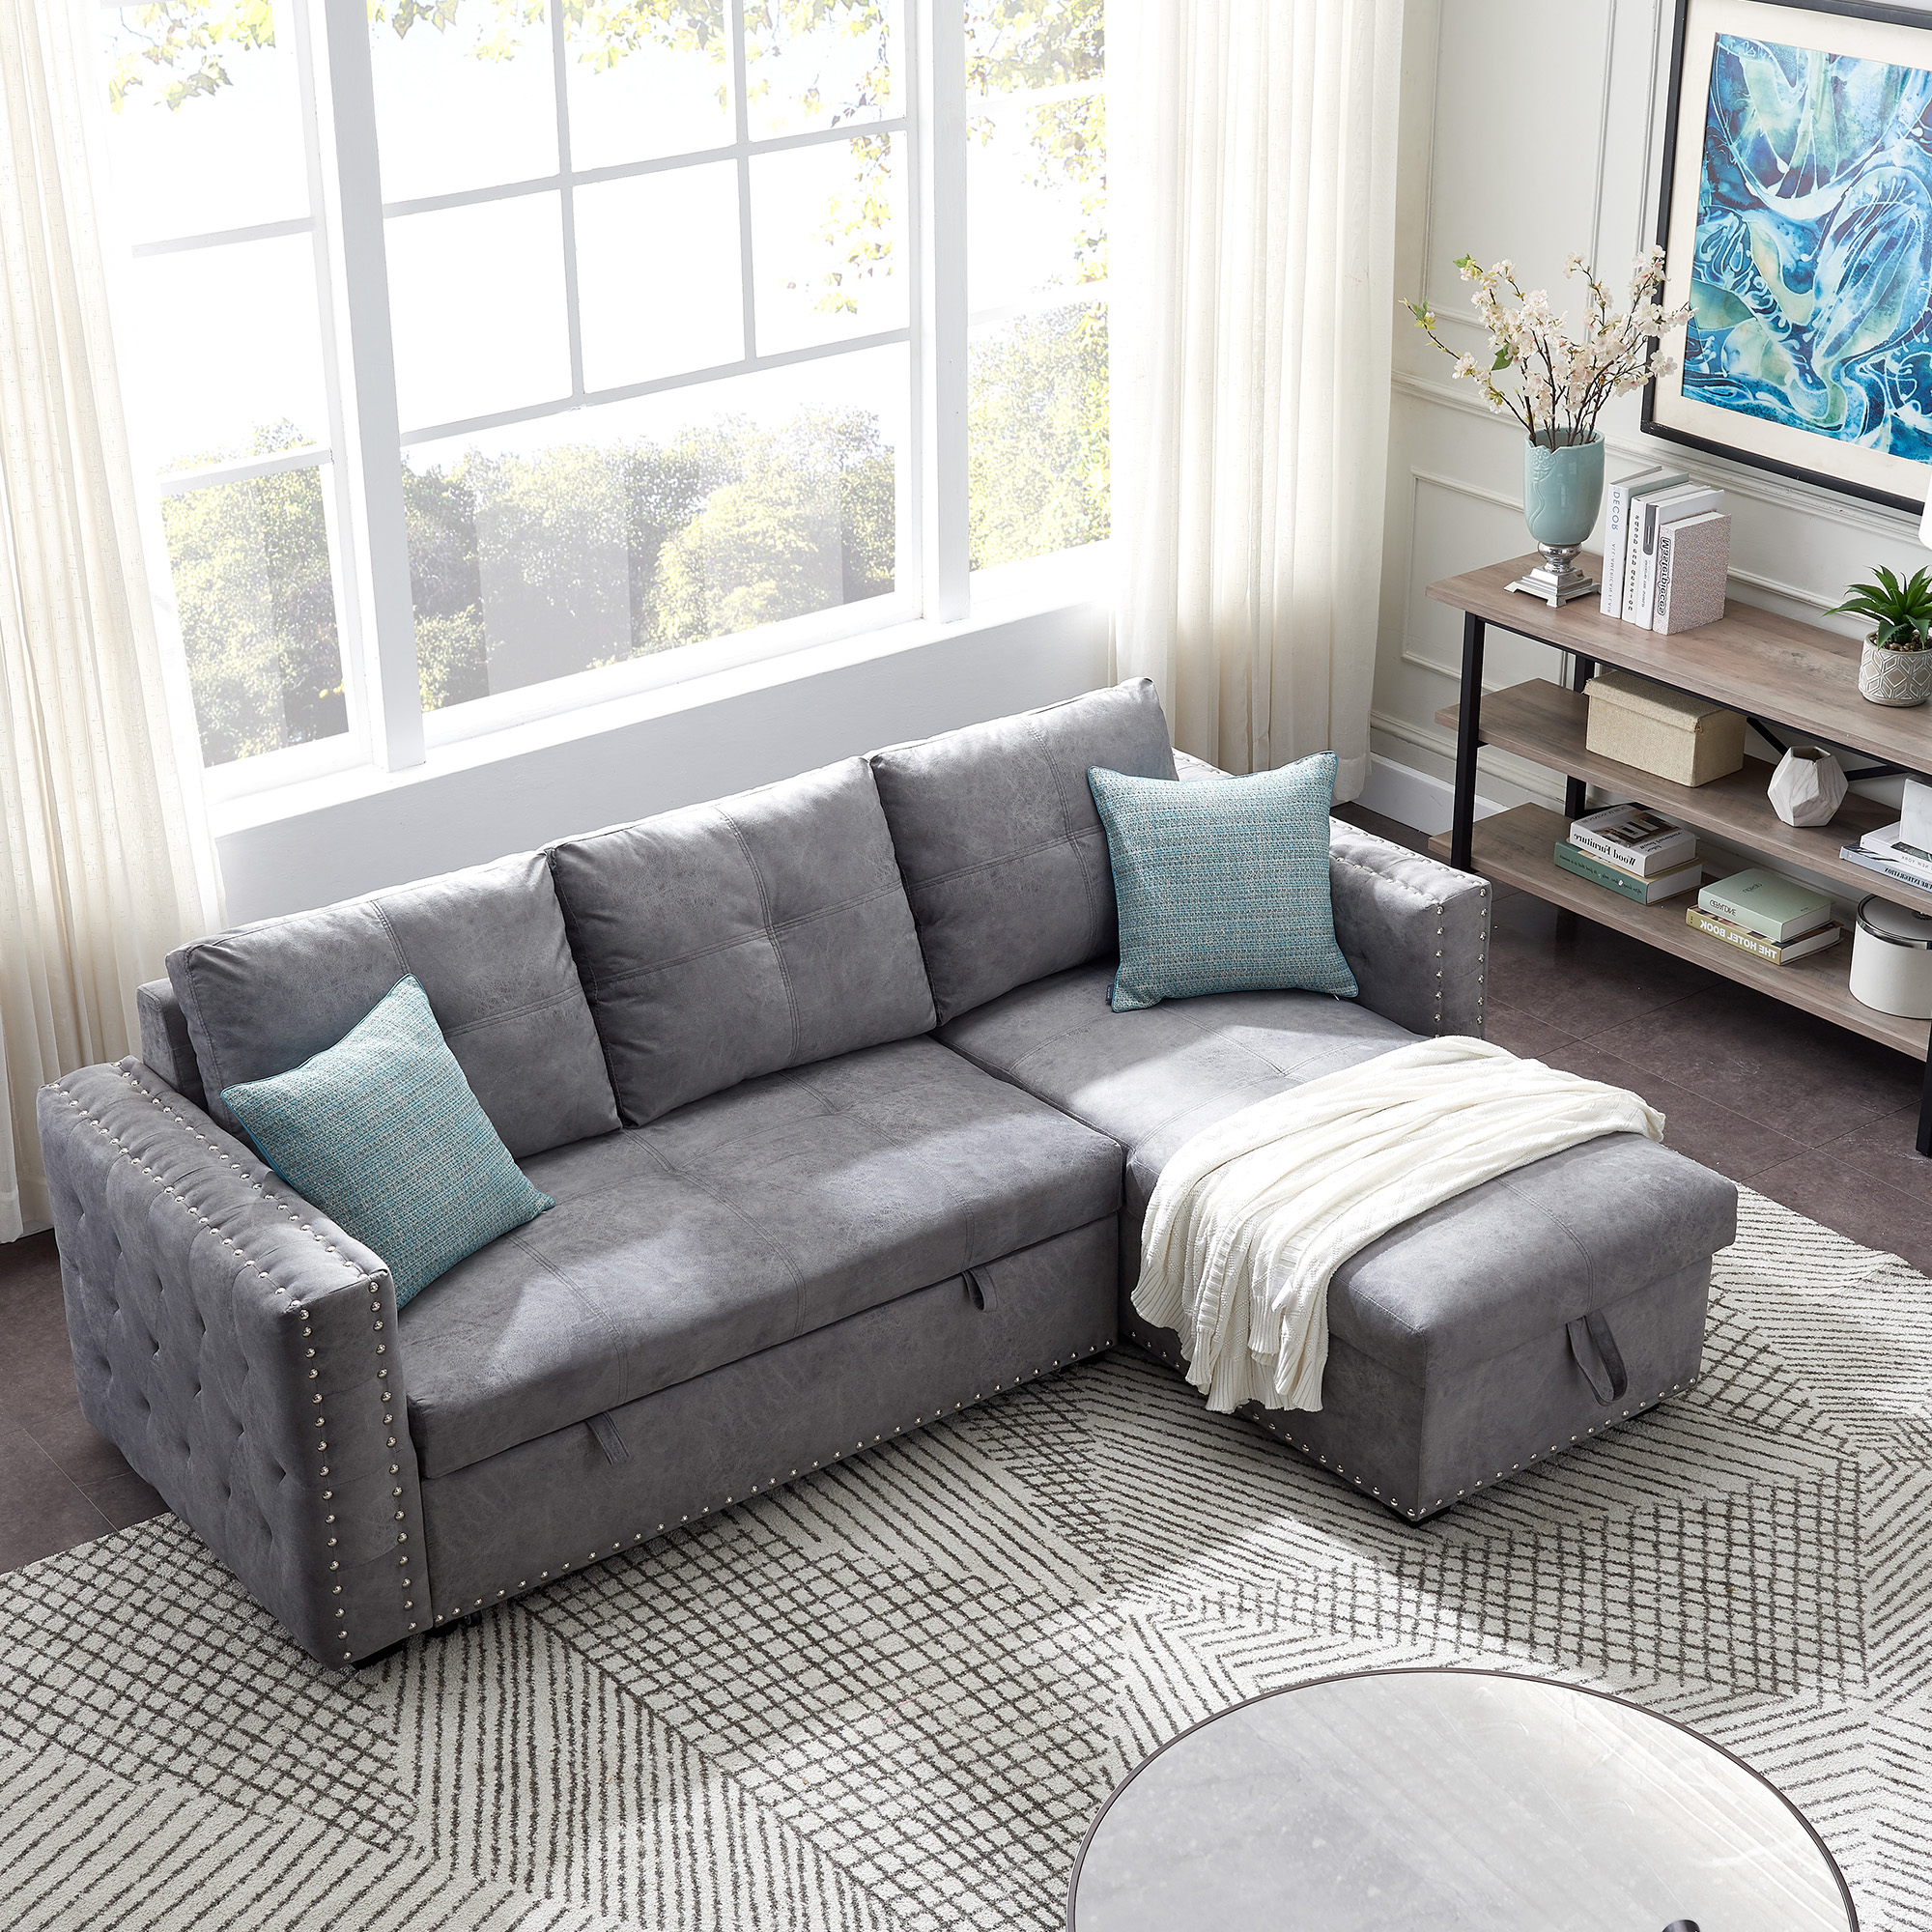 Most Recent Segmart Sectional Sofas, Modern Upholstered Sofa With Pertaining To Live It Cozy Sectional Sofa Beds With Storage (View 1 of 25)